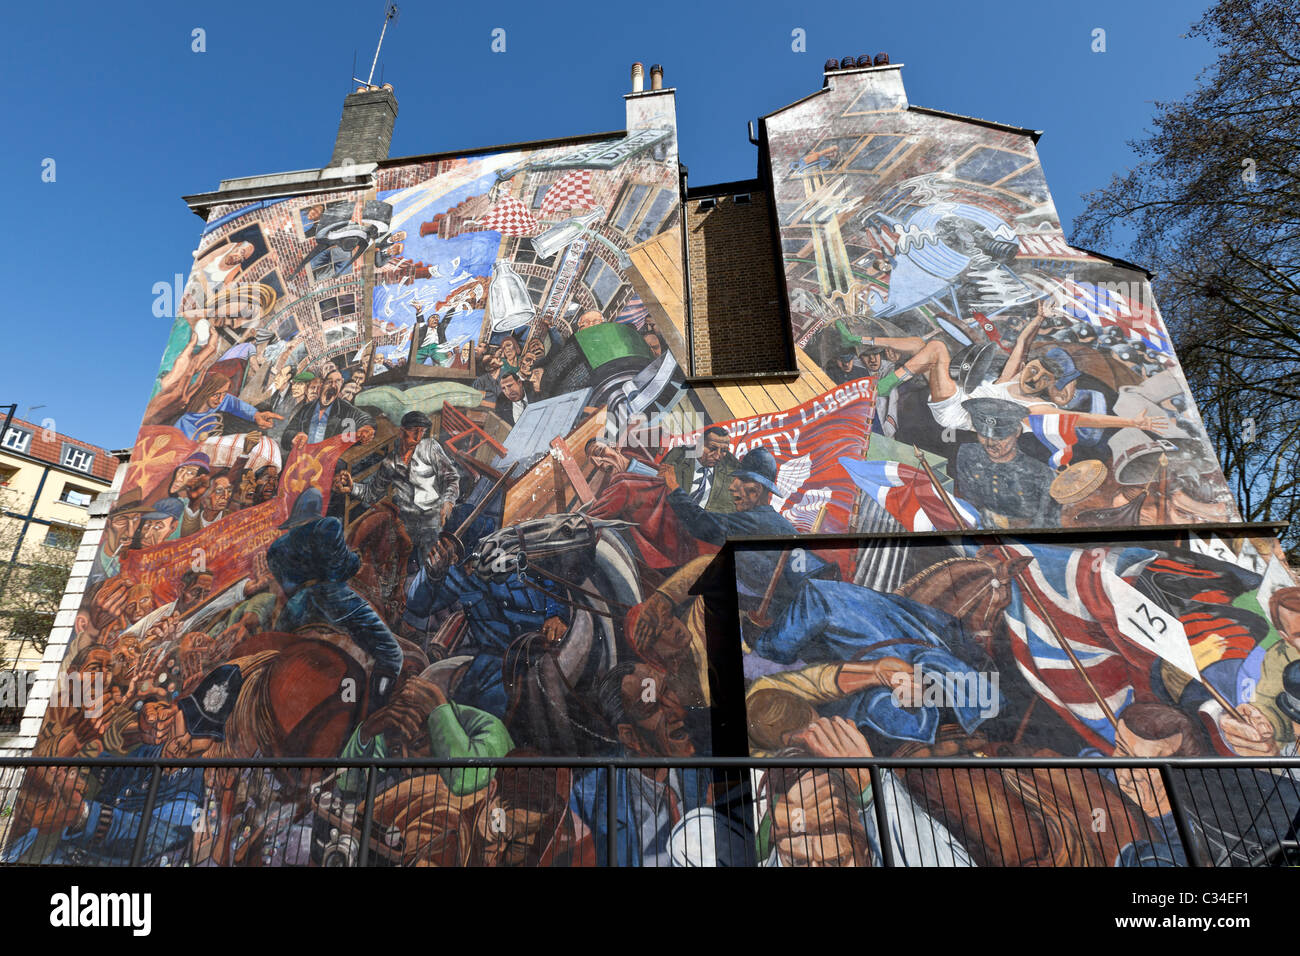 The Battle of Cable Street Mural created by artist Dave Binnington, London, England, UK. - Stock Image